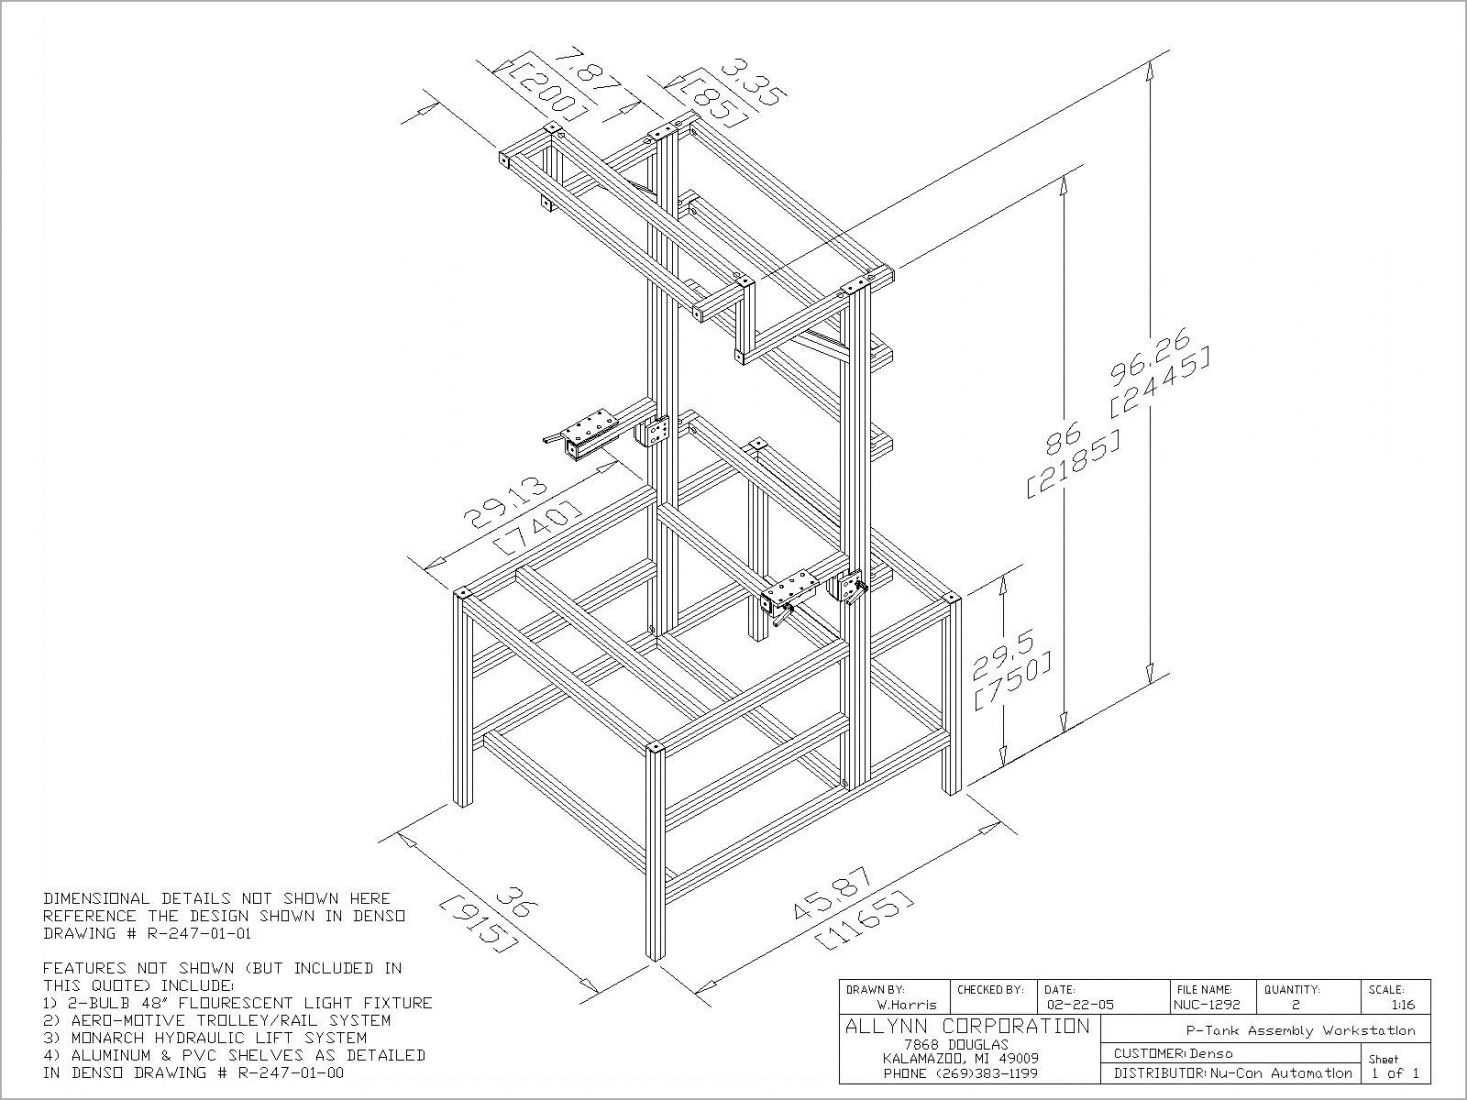 tank drawing reference gdlawct Forklift Parts Diagram tank meeting workstation nuc 1292 allynn